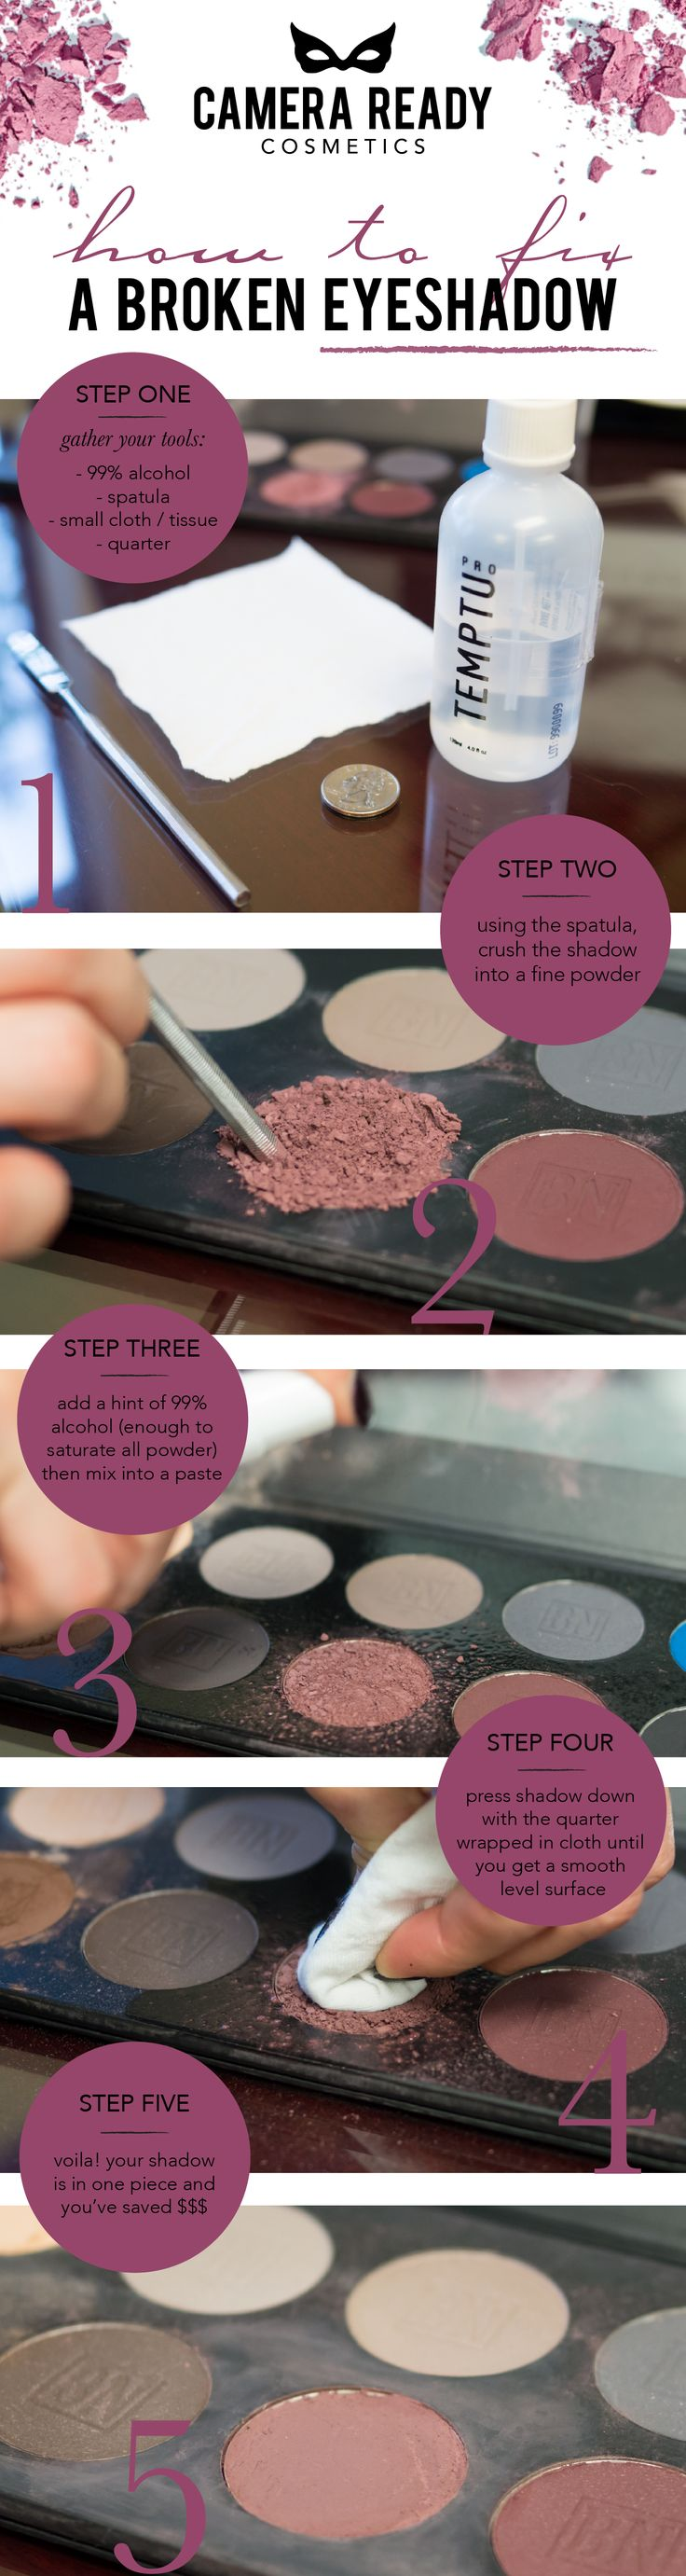 Broke your precious eyeshadow? Don't worry, darling! Here's how to fix it. #CRCMakeup